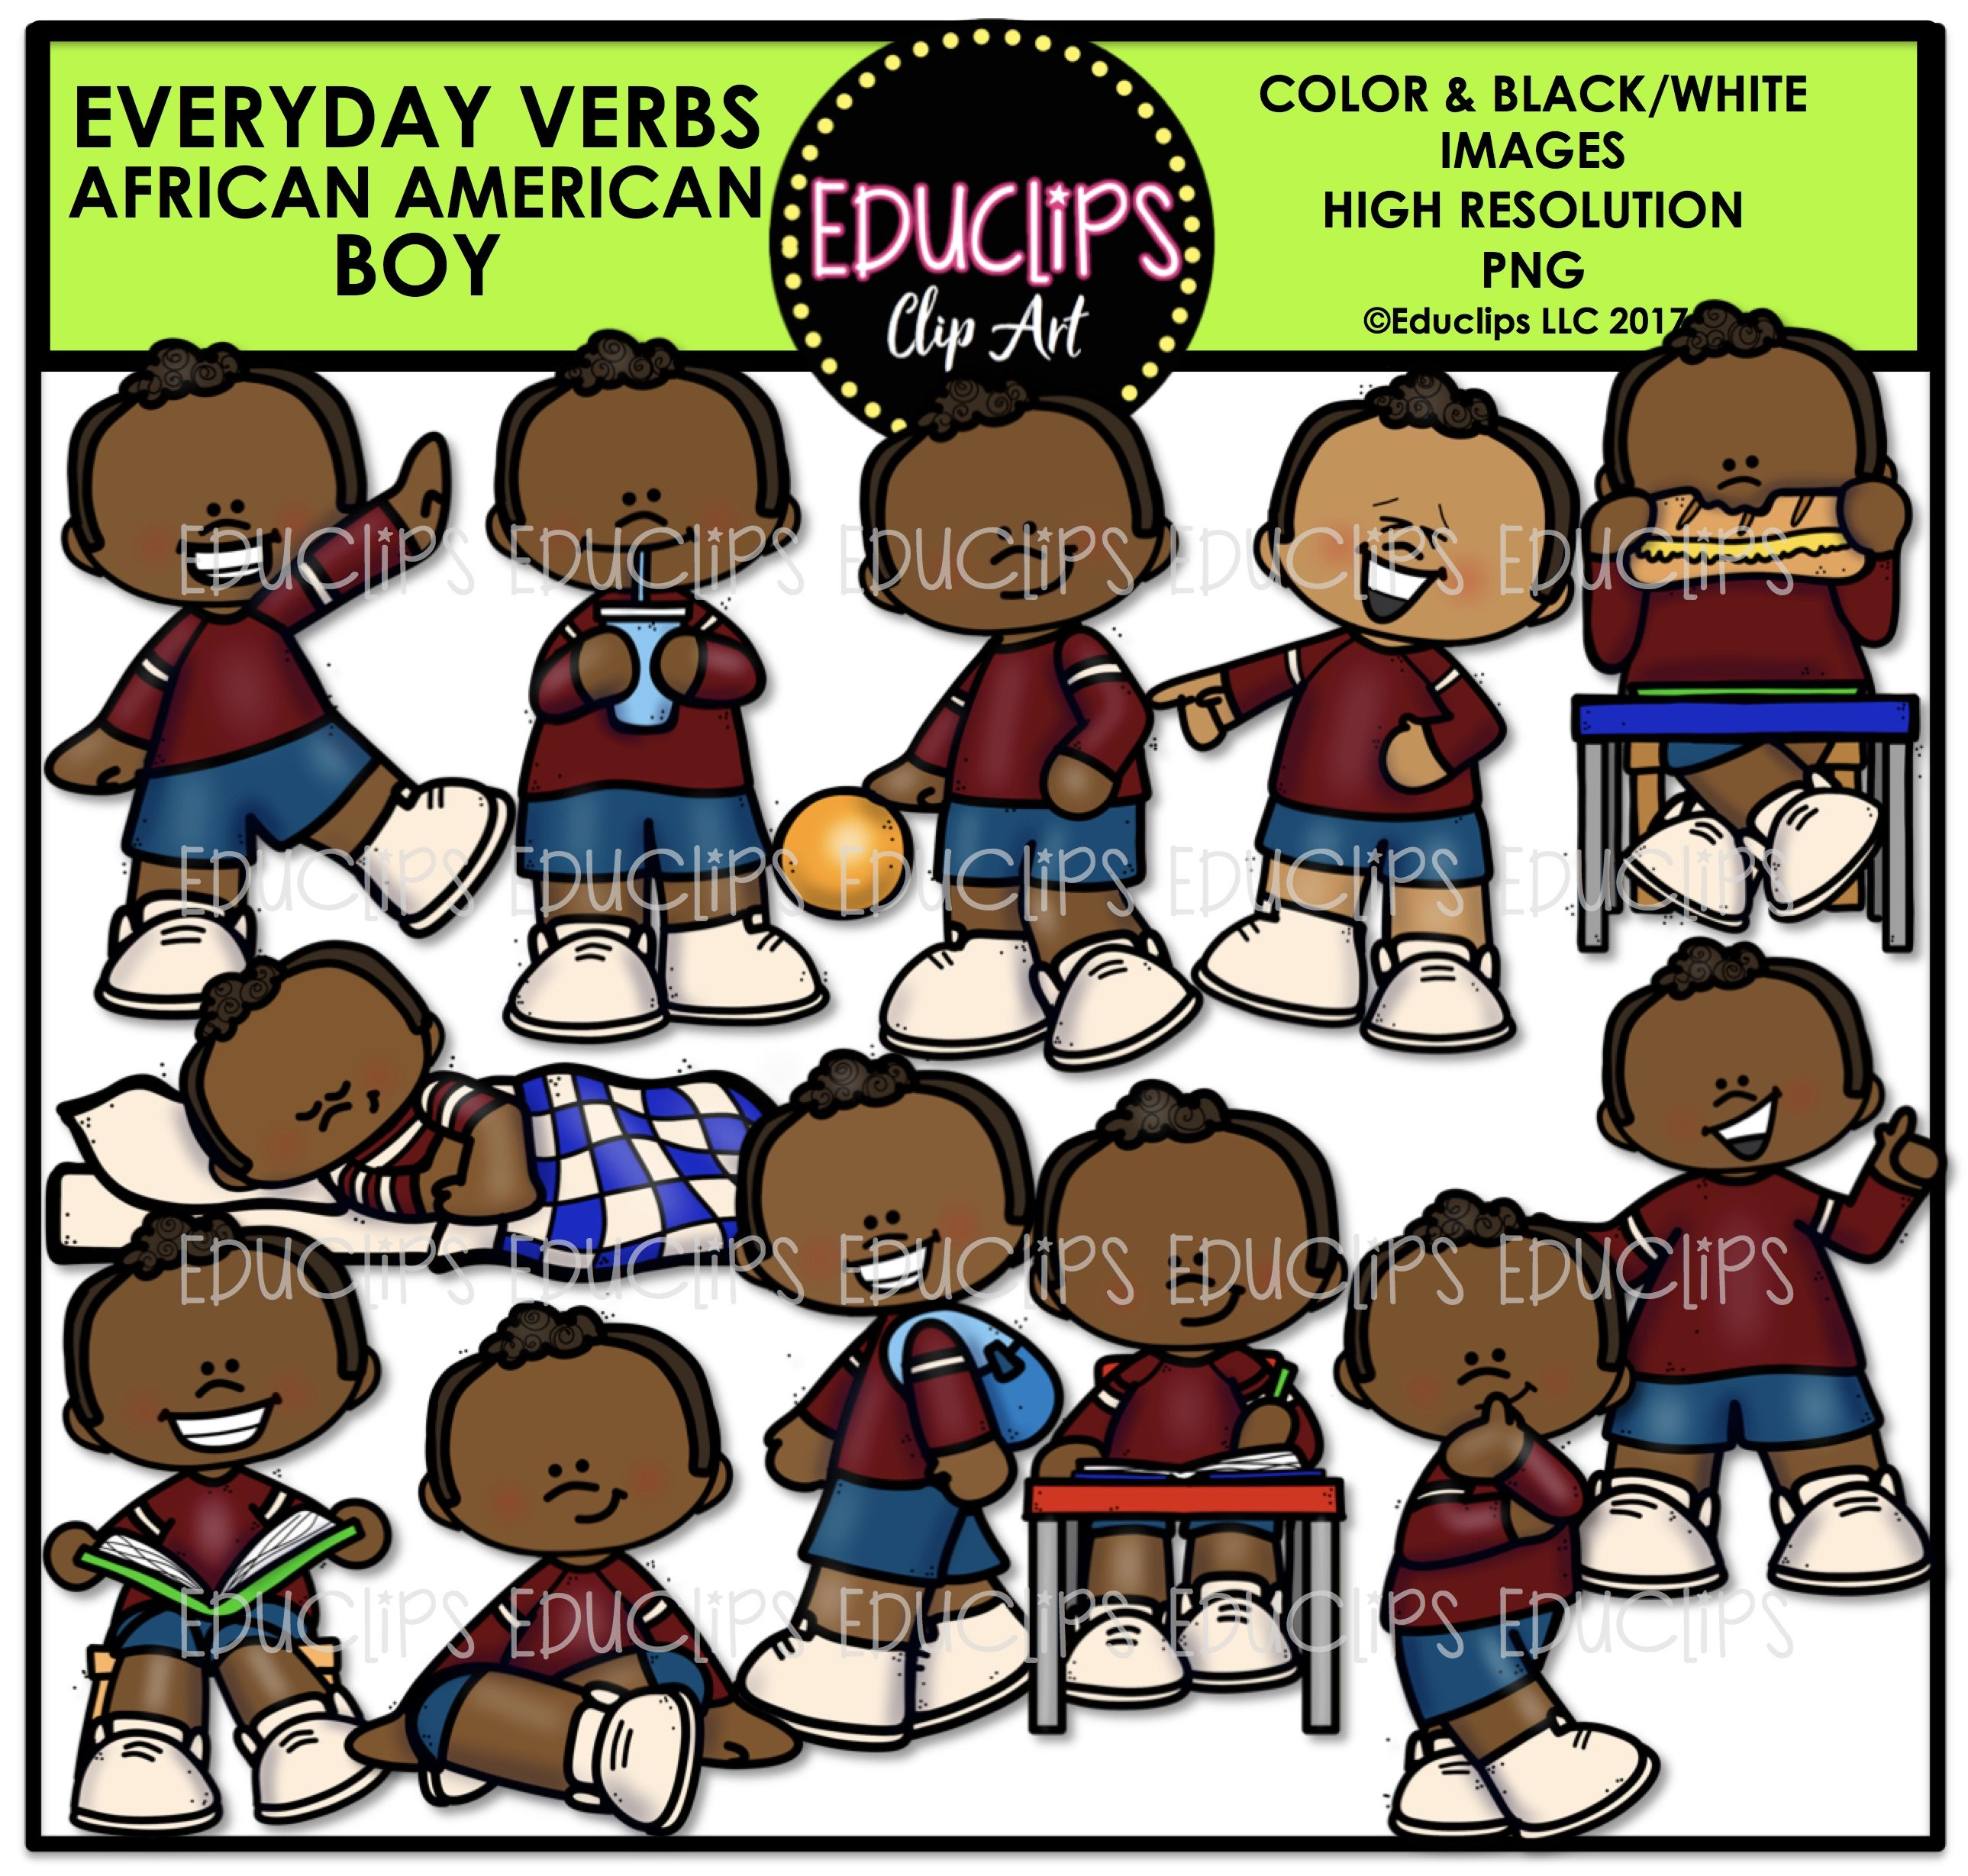 African clipart child african. Everyday verbs american boy